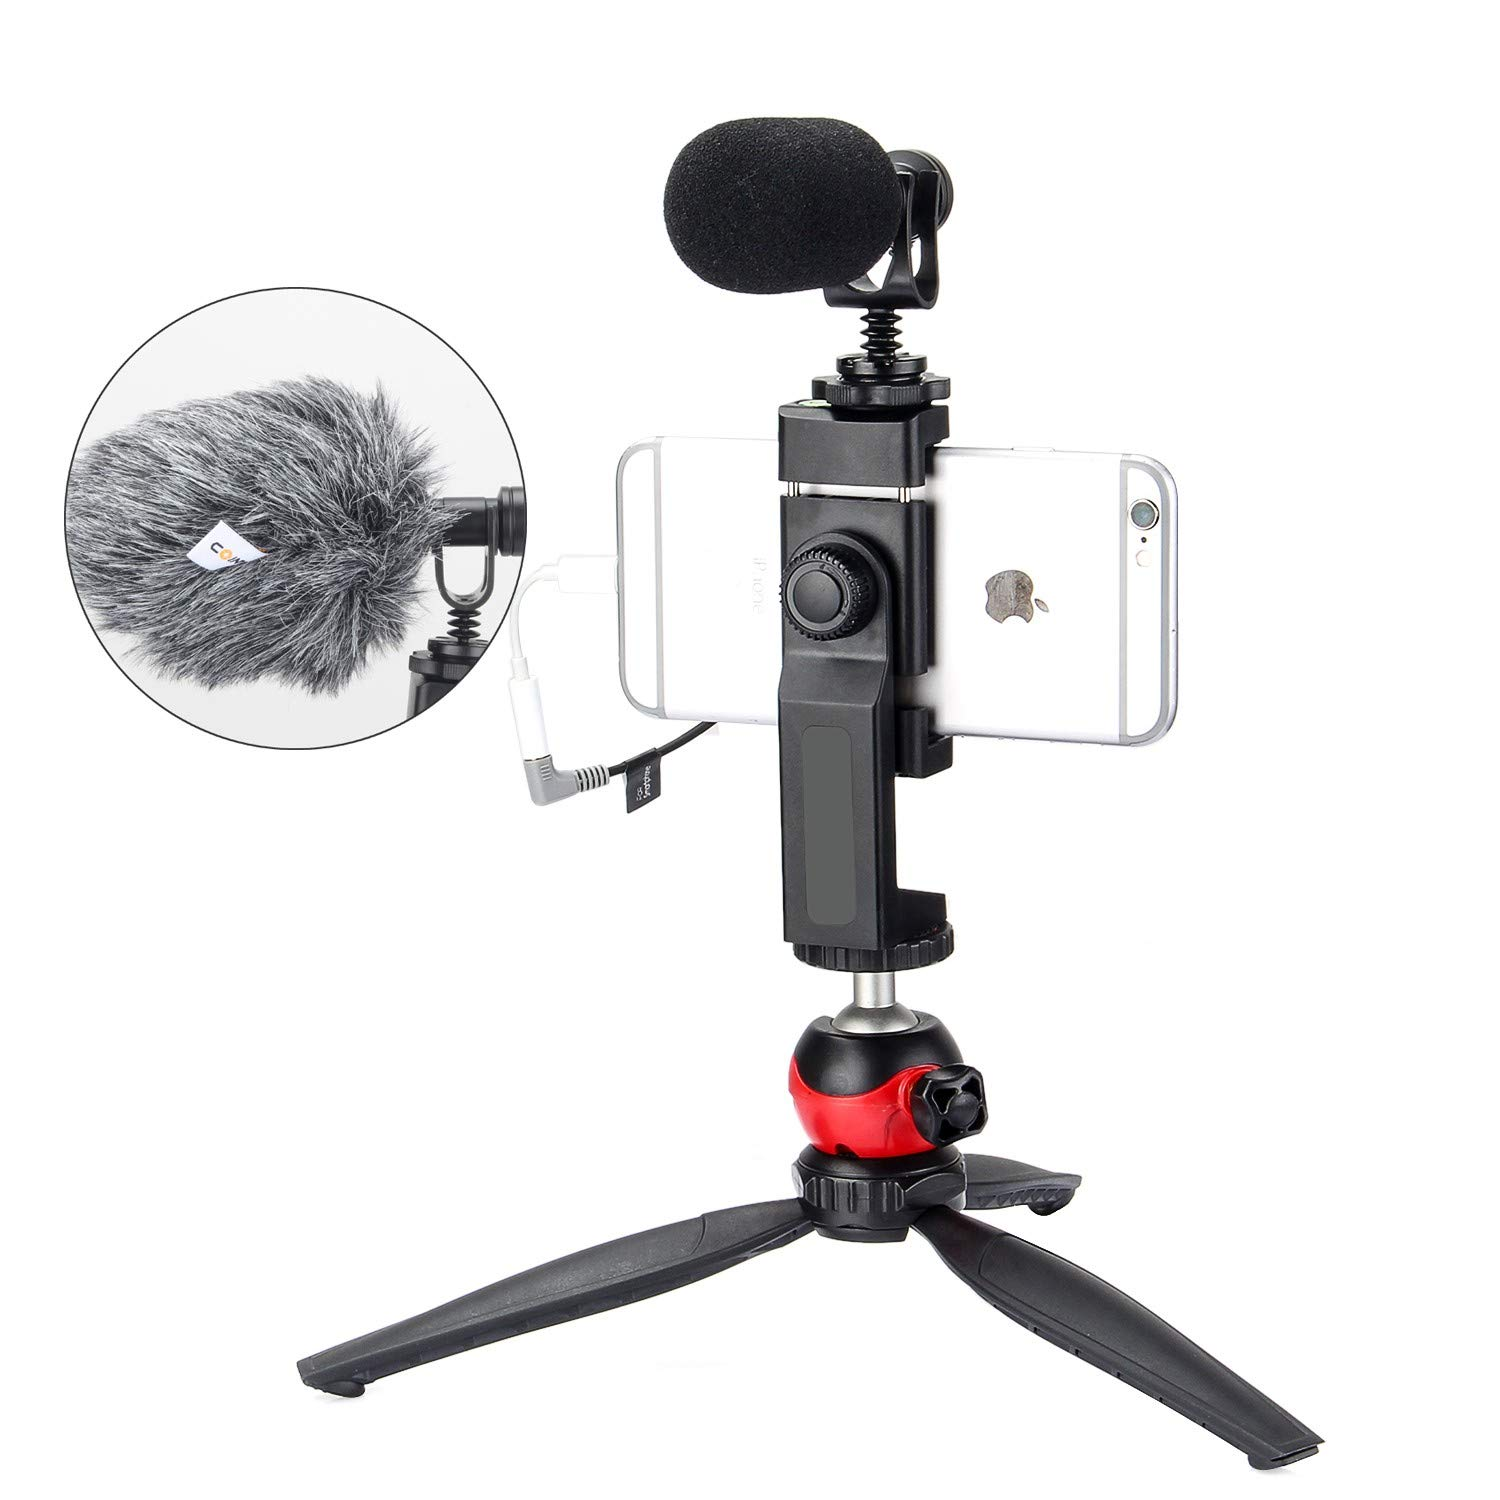 EACHSHOT Smartphone Phone Video Film Recording Microphone Kit Filmmaker Mini Tripod with Shotgun Video Mic Video Rig for iPhone X 8Plus 8 7Plus 7 Samsung Huawei etc. by EACHSHOT